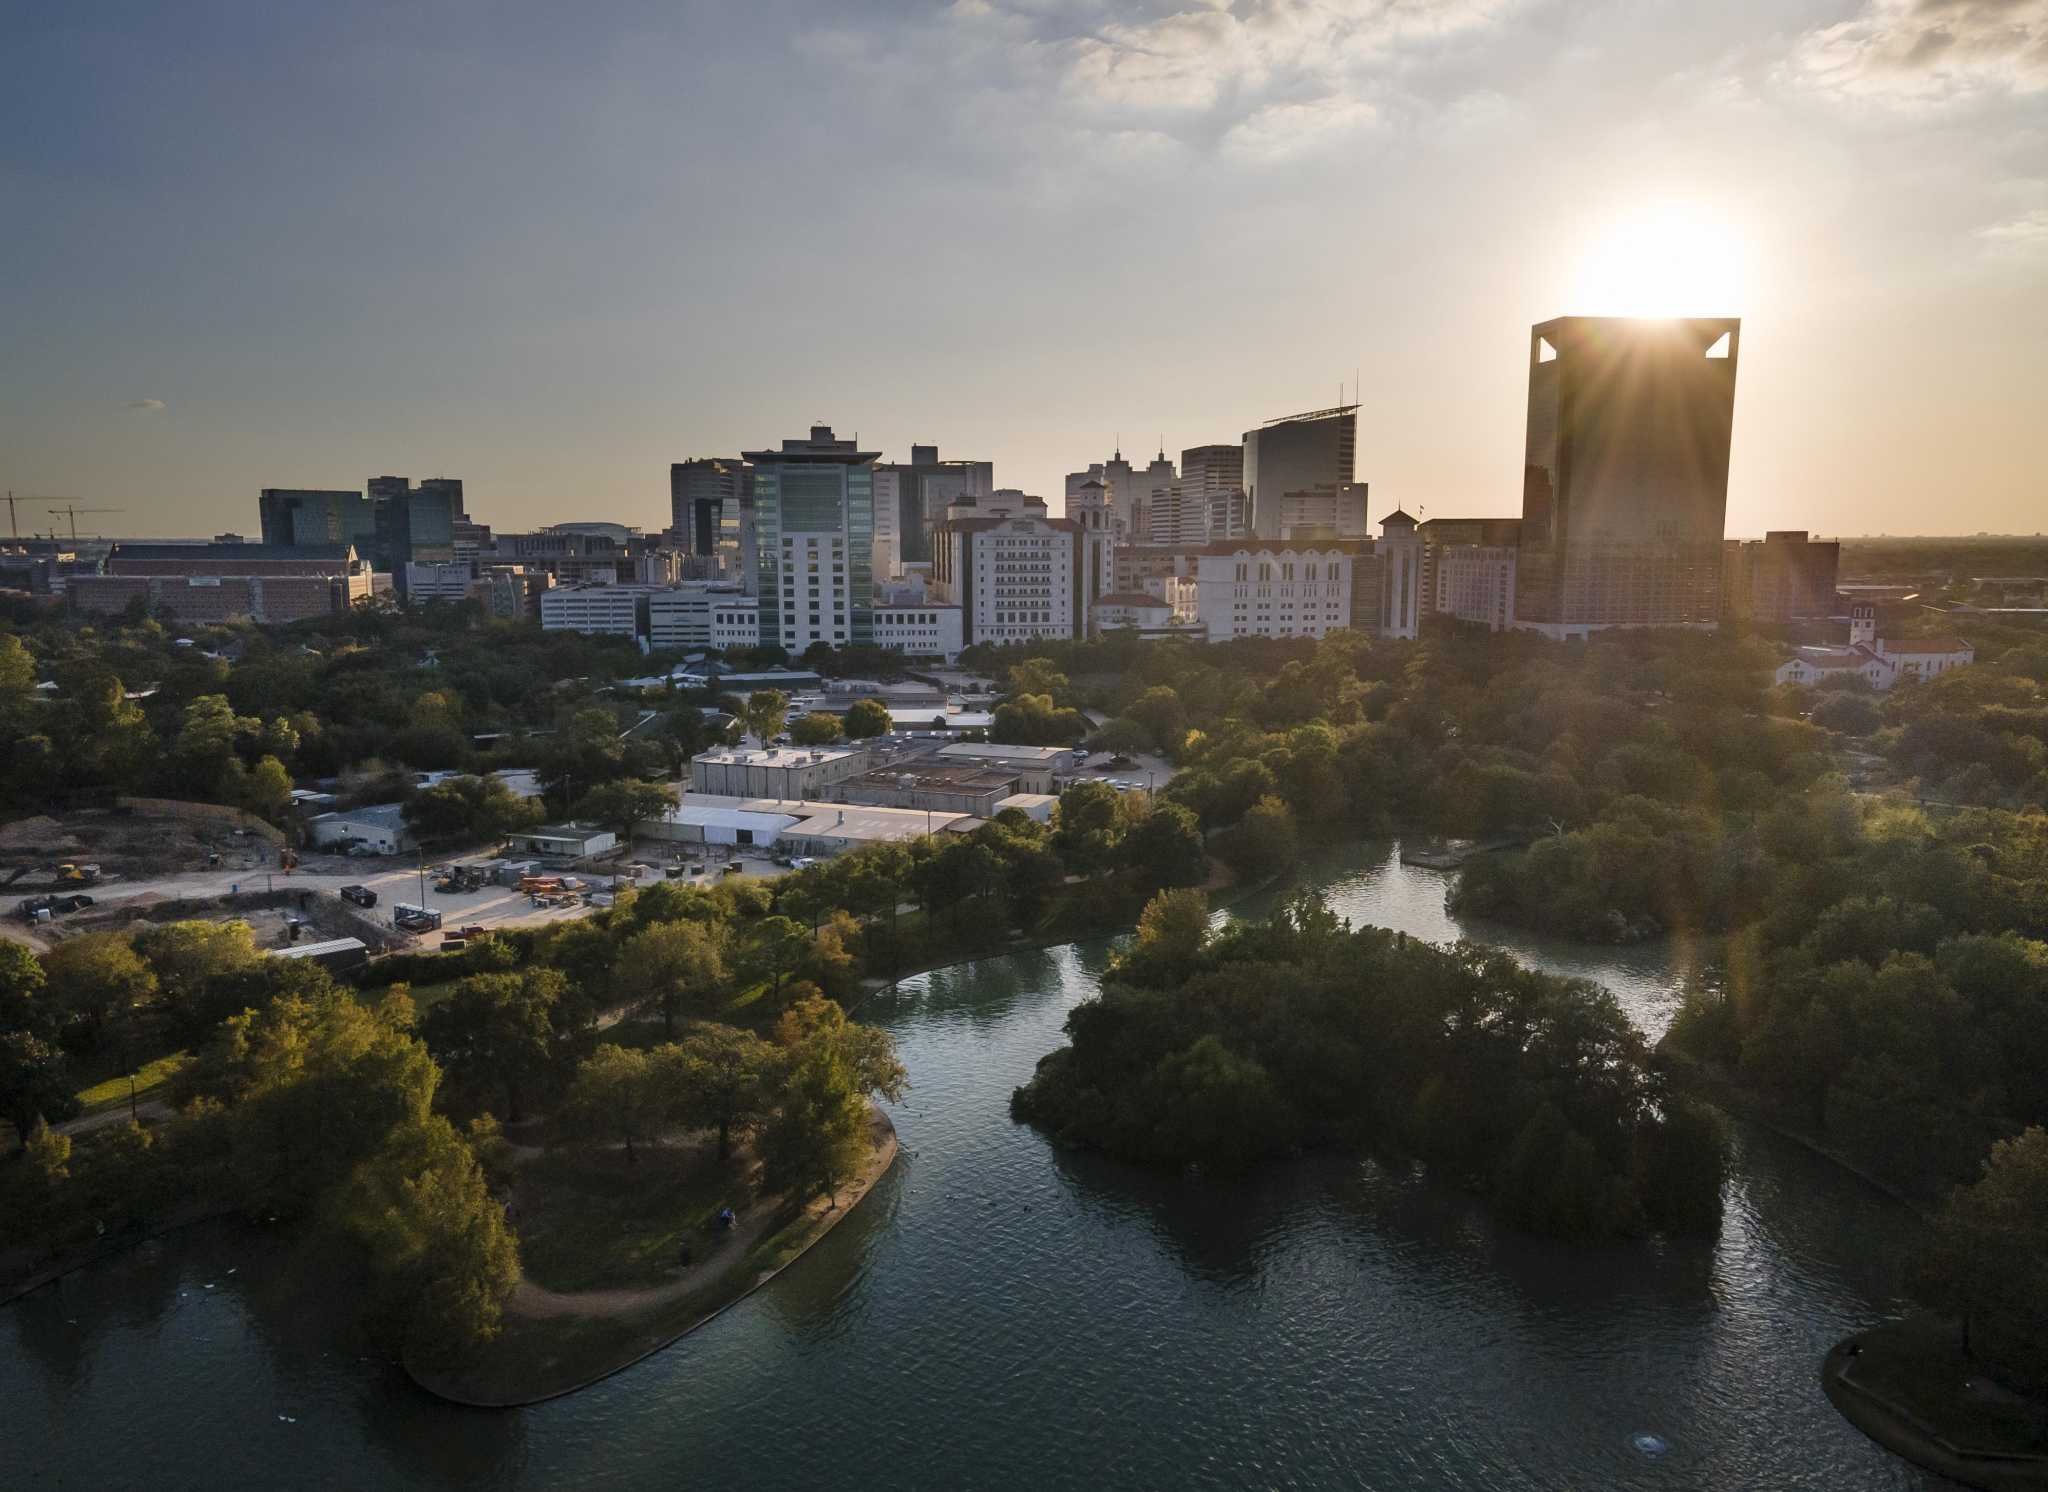 'Dark times': Houston's fourth COVID-19 wave to be the largest yet, medical leaders predict